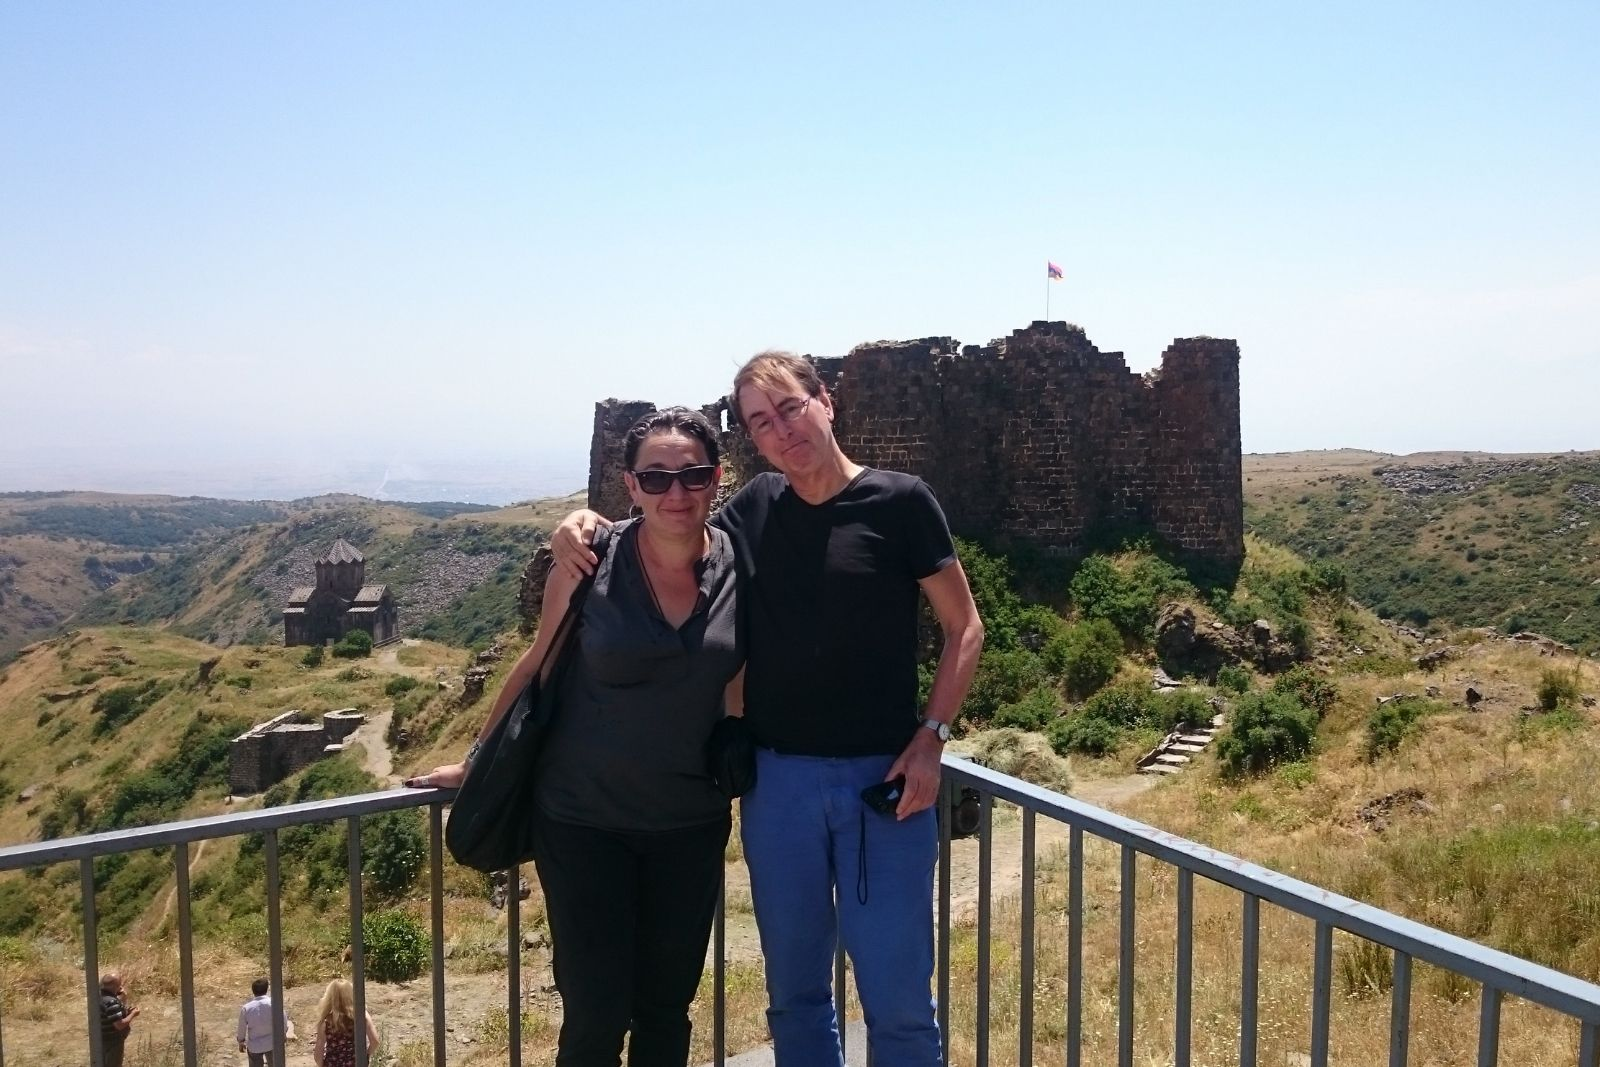 Armenian Studies summer school 2015 participants at the early medieval Amberd fortress